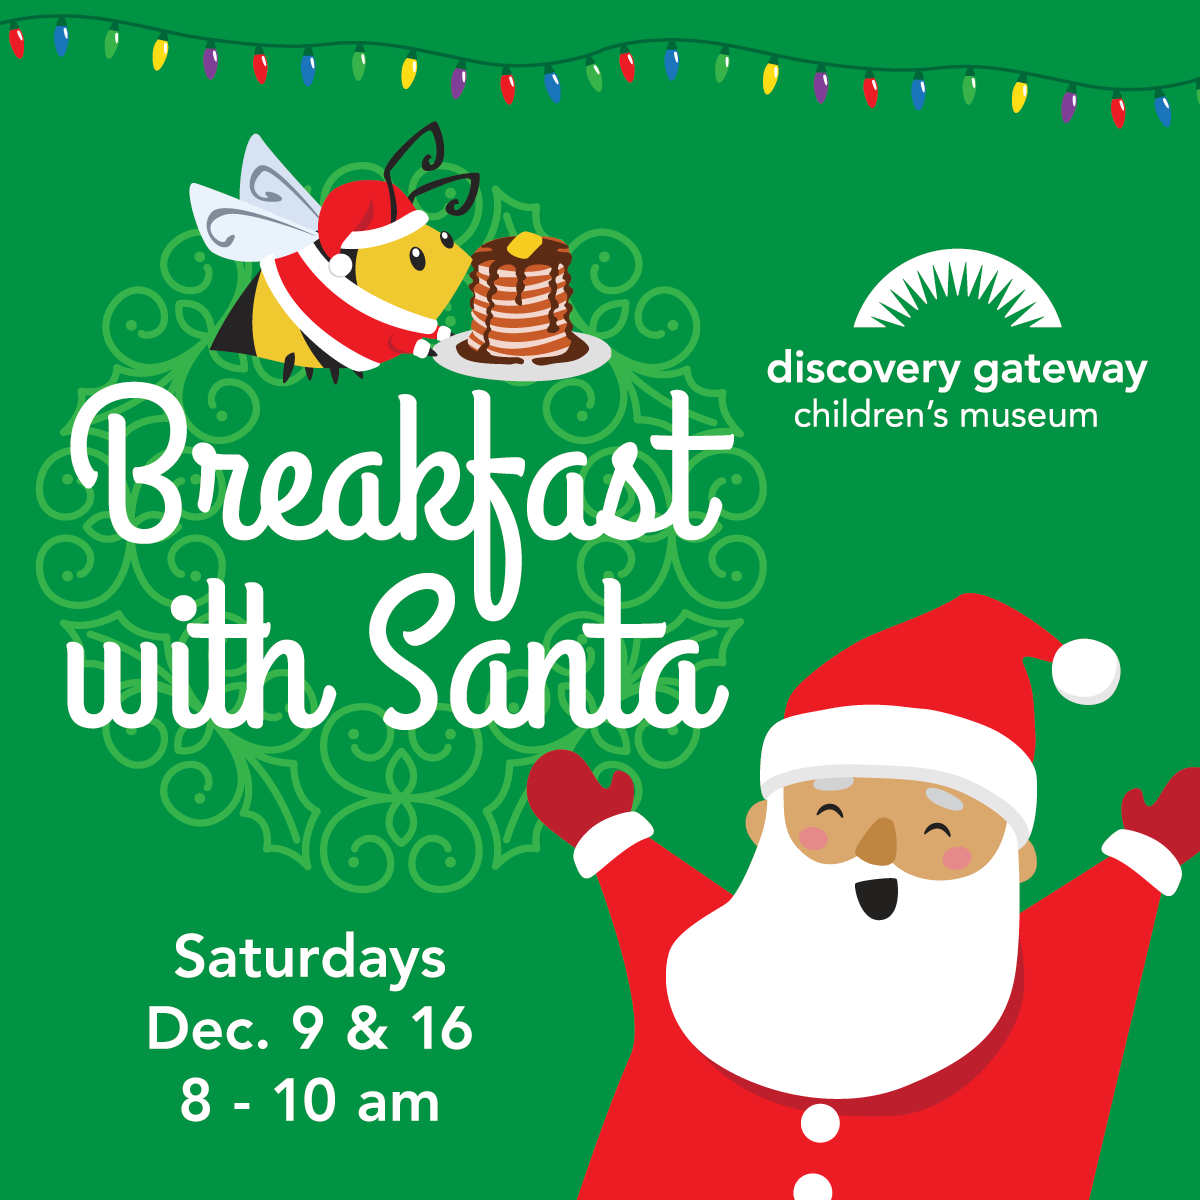 Sold out breakfast with santa kids out and about salt lake city kristyandbryce Image collections